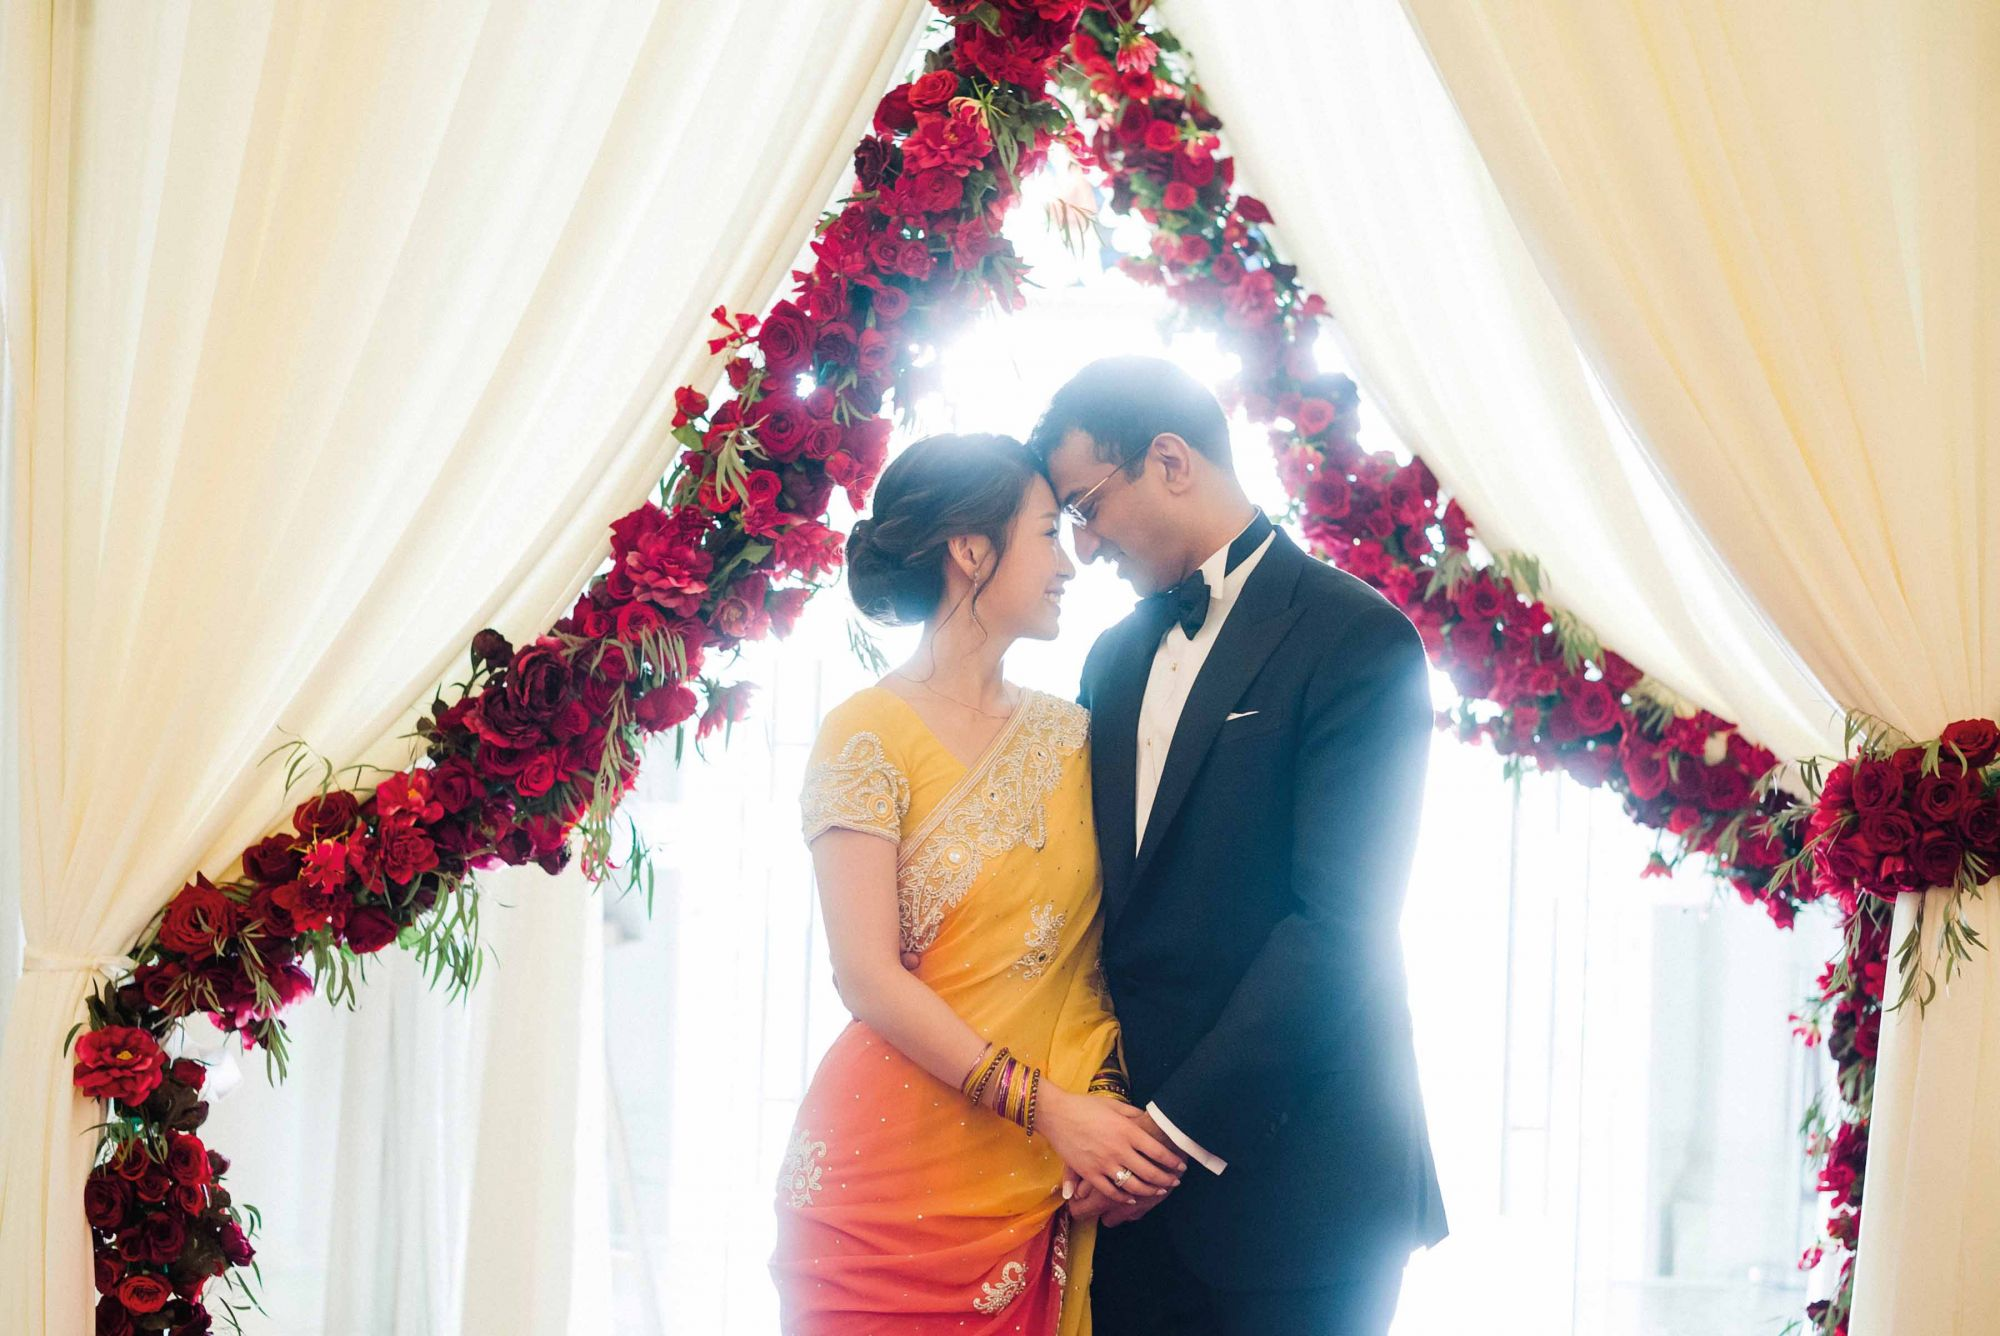 Gold Grandeur: How Lisa Gwee & Ganesh Ramalingam Tied The Knot